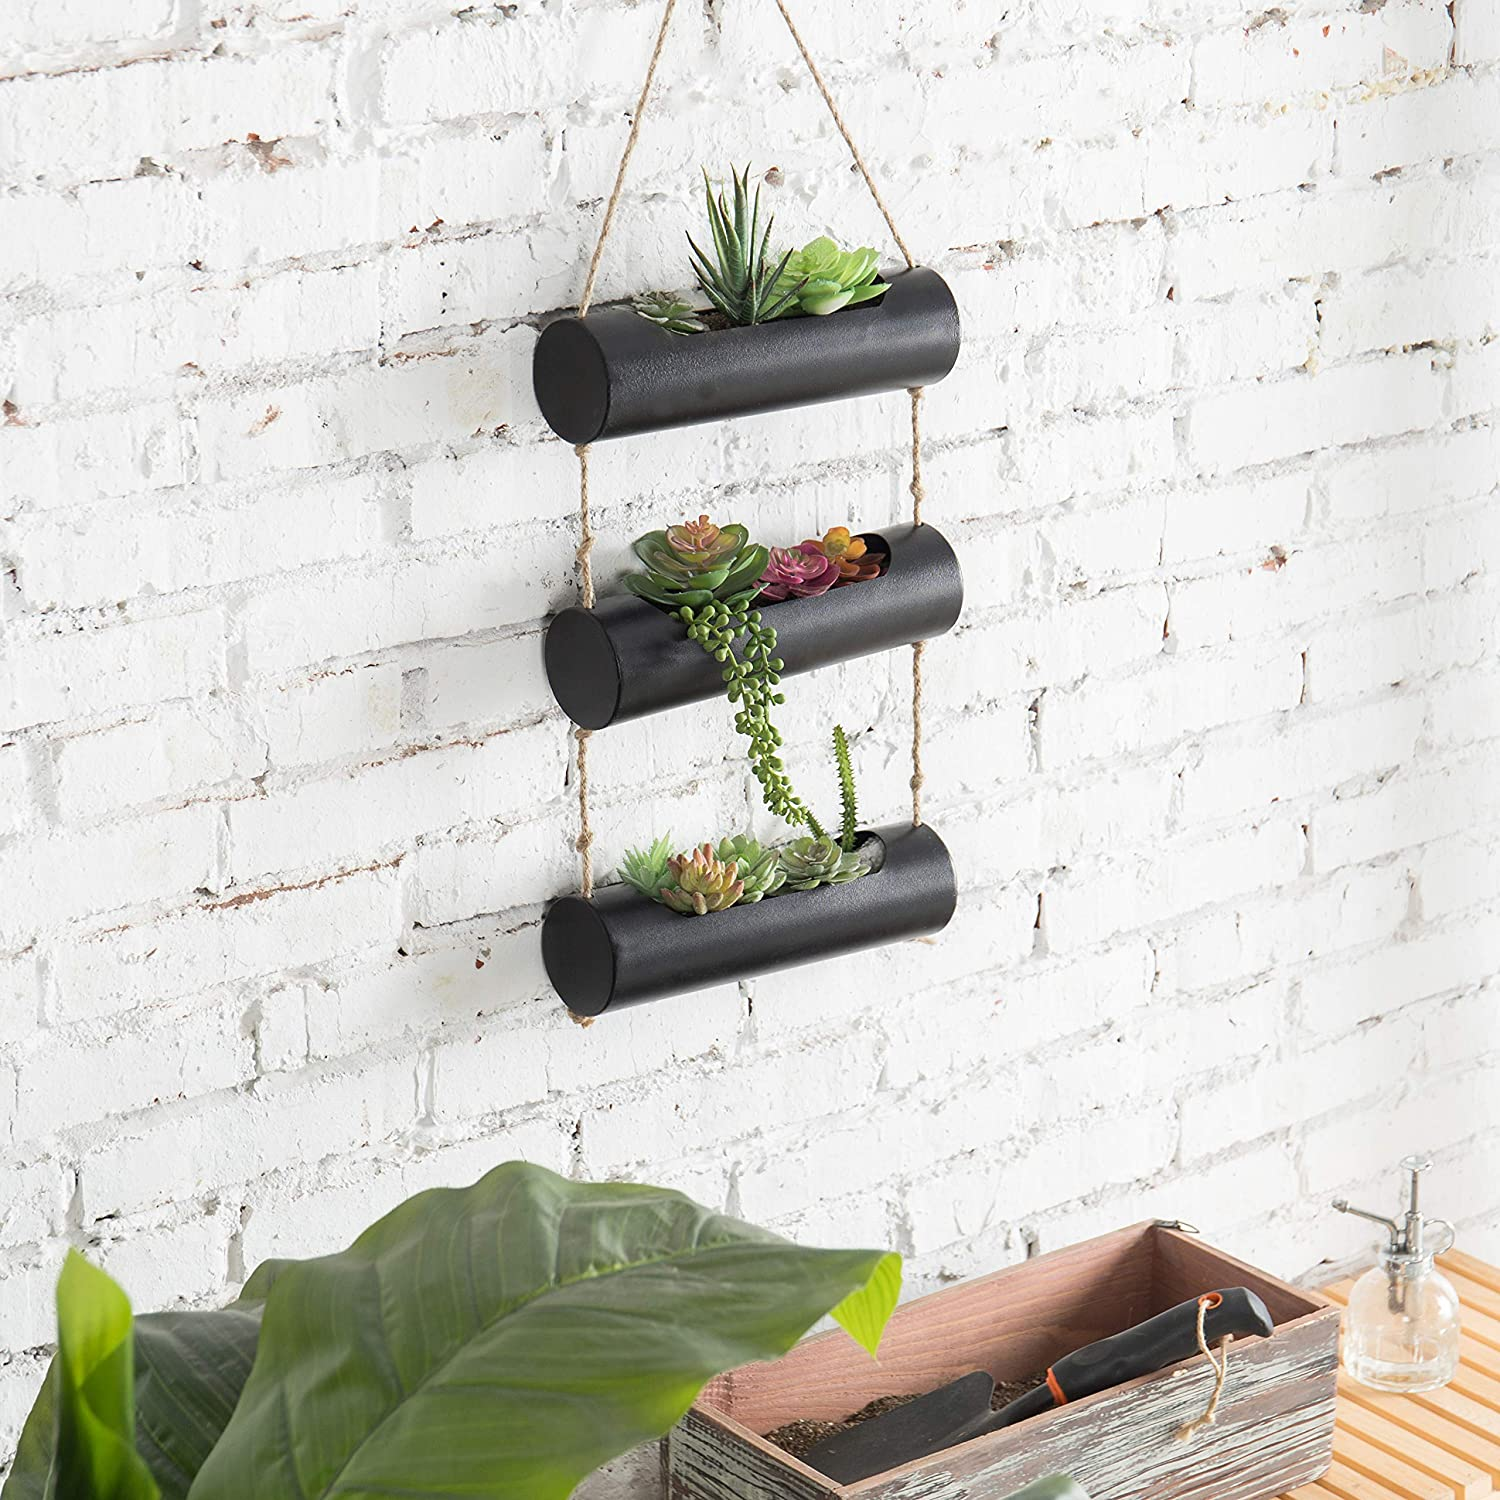 MyGift 3-Tier Black Metal Wall-Hanging 10-Inch Cylinder Trough-Style Planter for Succulent Cactus Plants